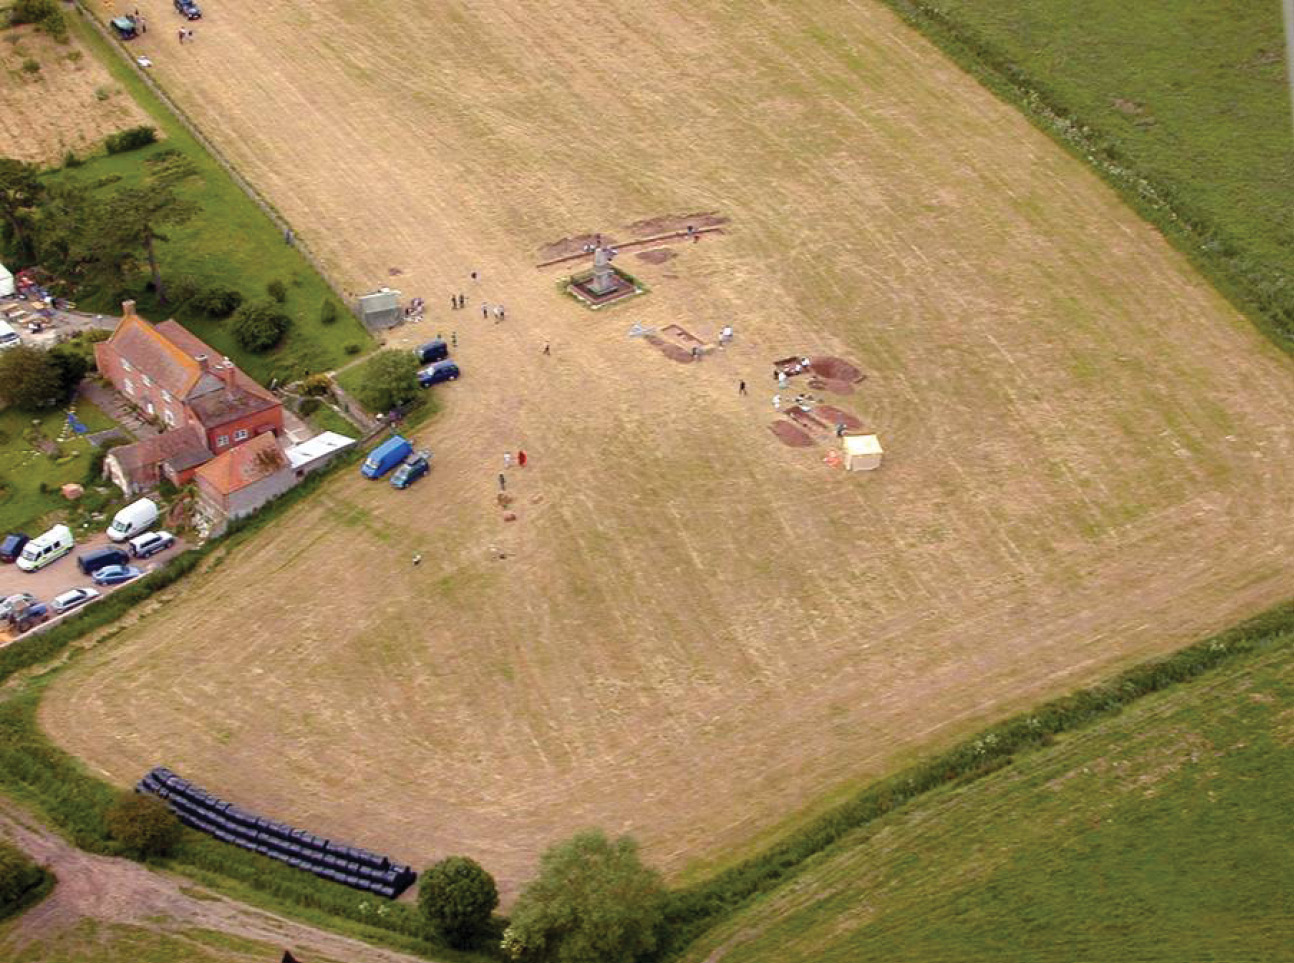 above Aerial view of the dig at Atheleny. King Alfred's monument, now closed to the public, appears at centre.